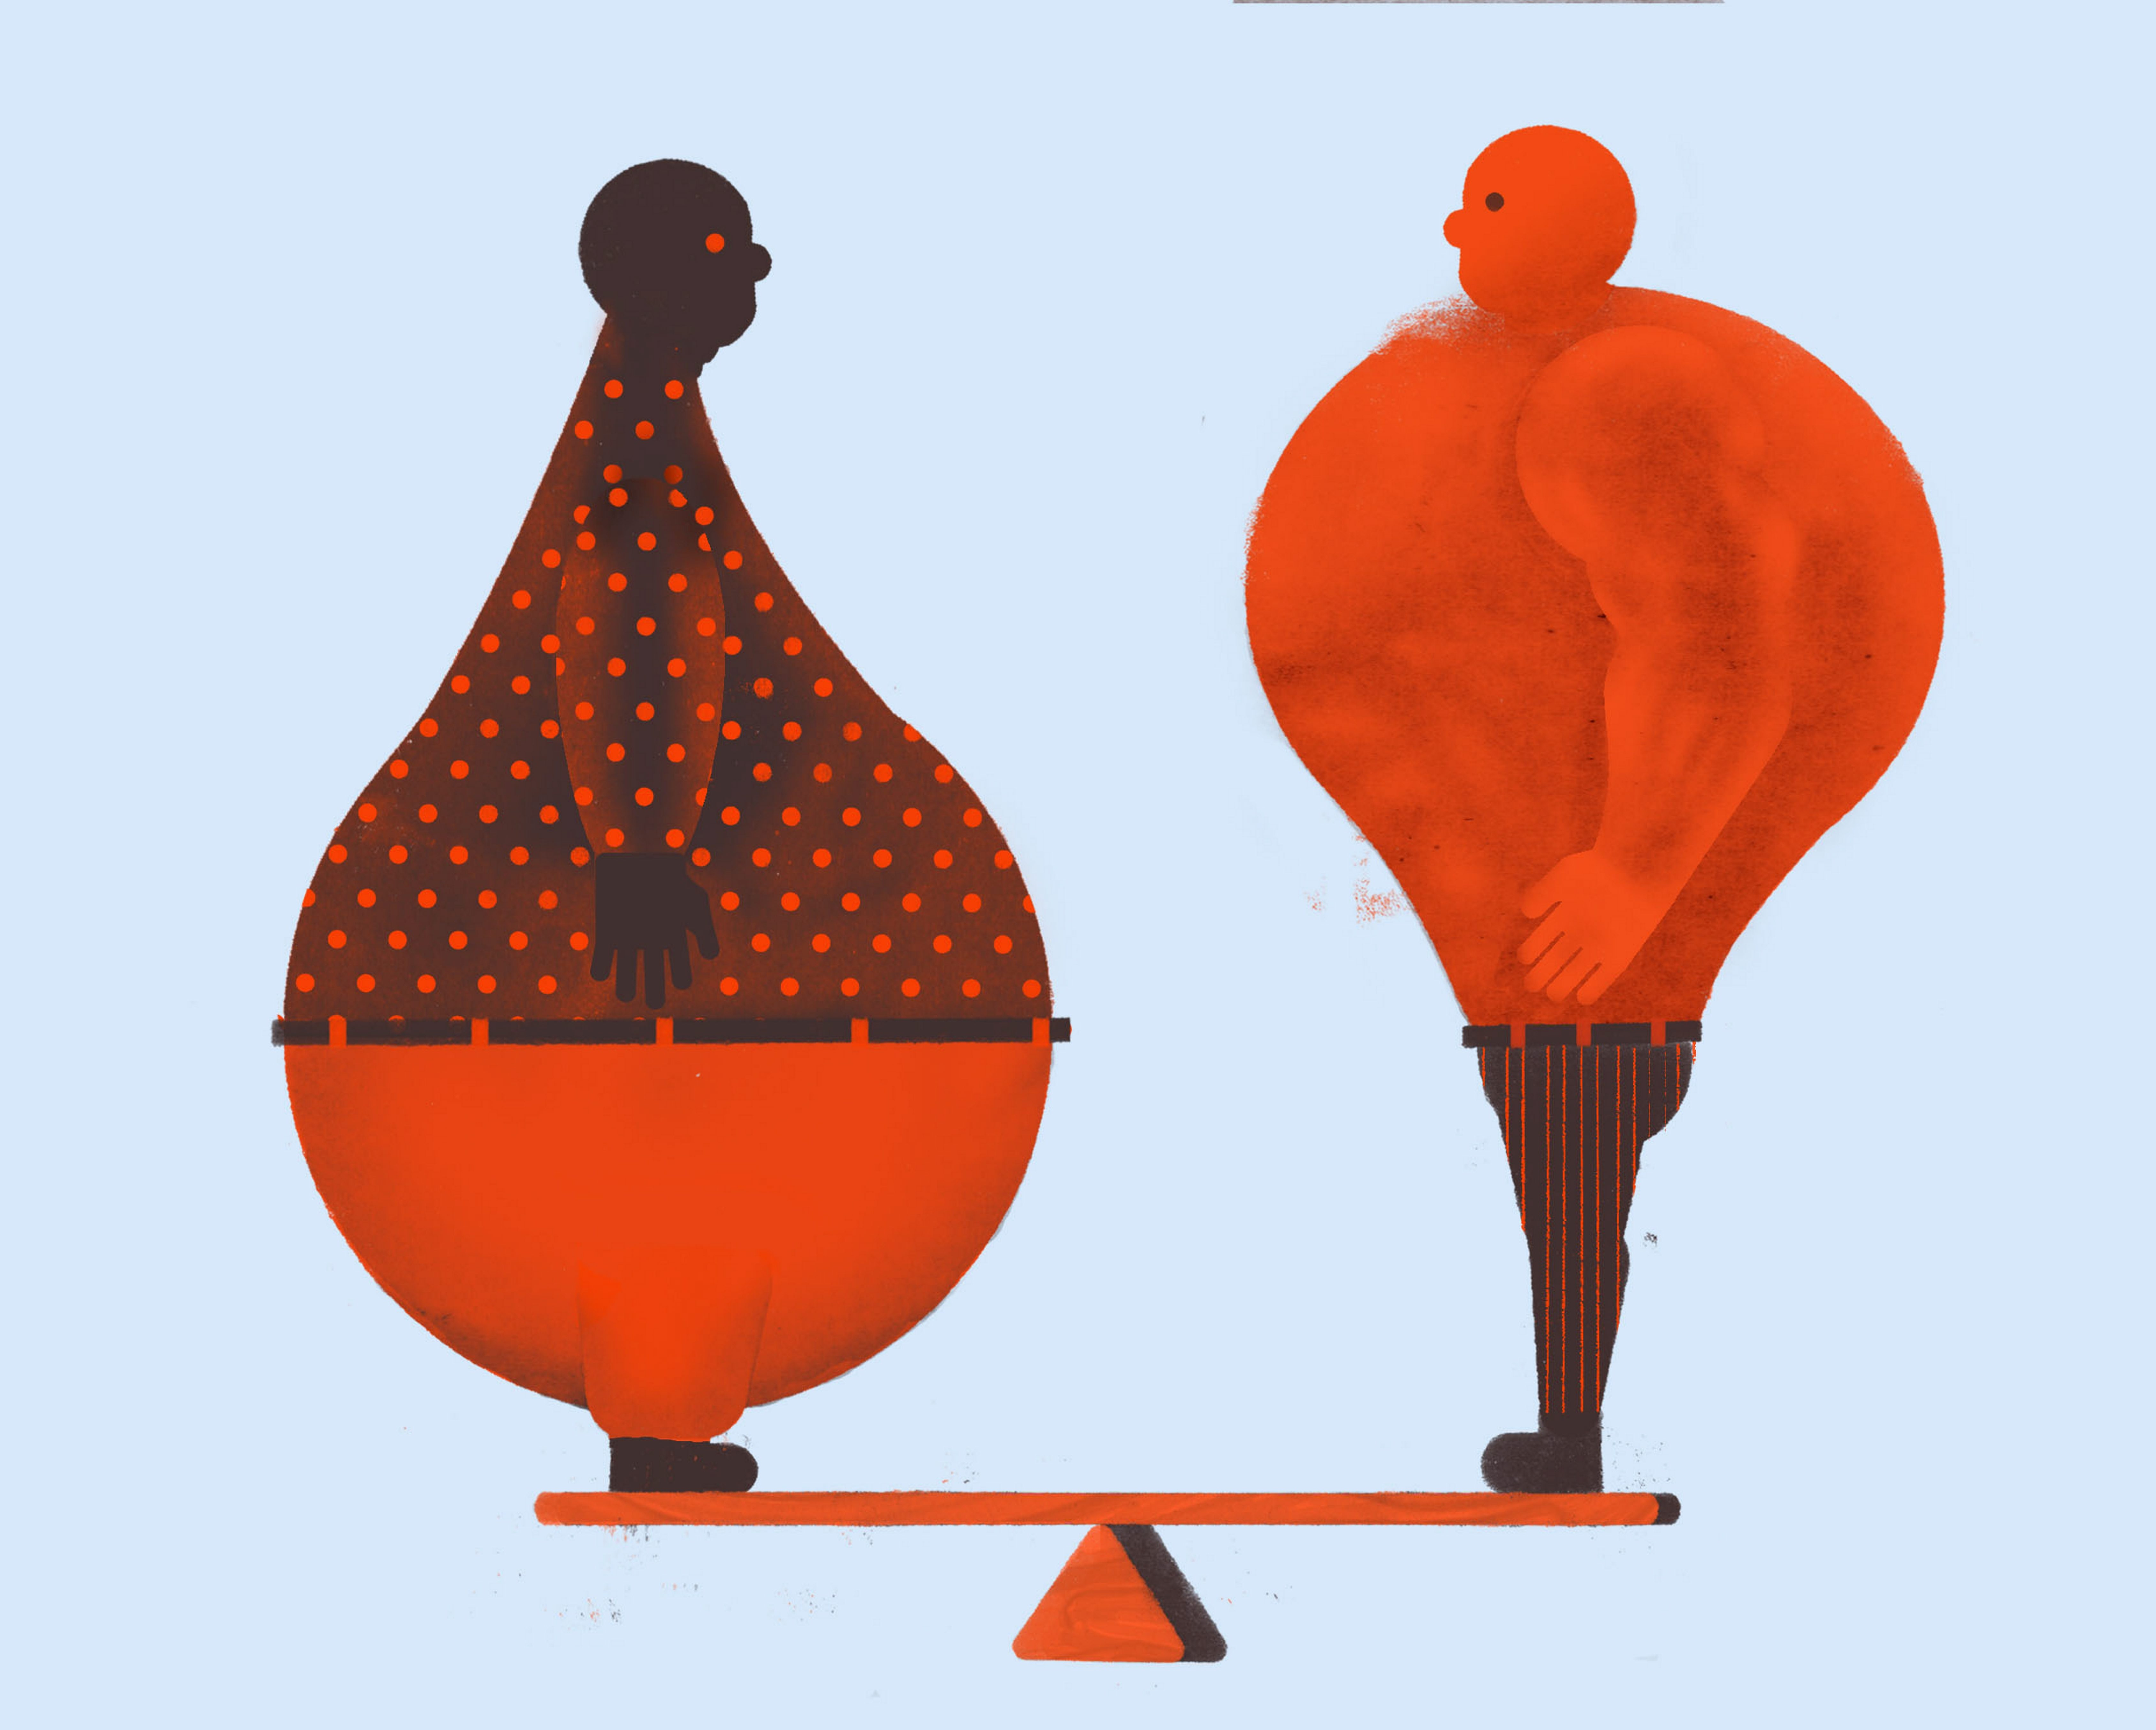 The well-established body mass index has lately gained detractors who say it contributes to misguided thinking on obesity and health.